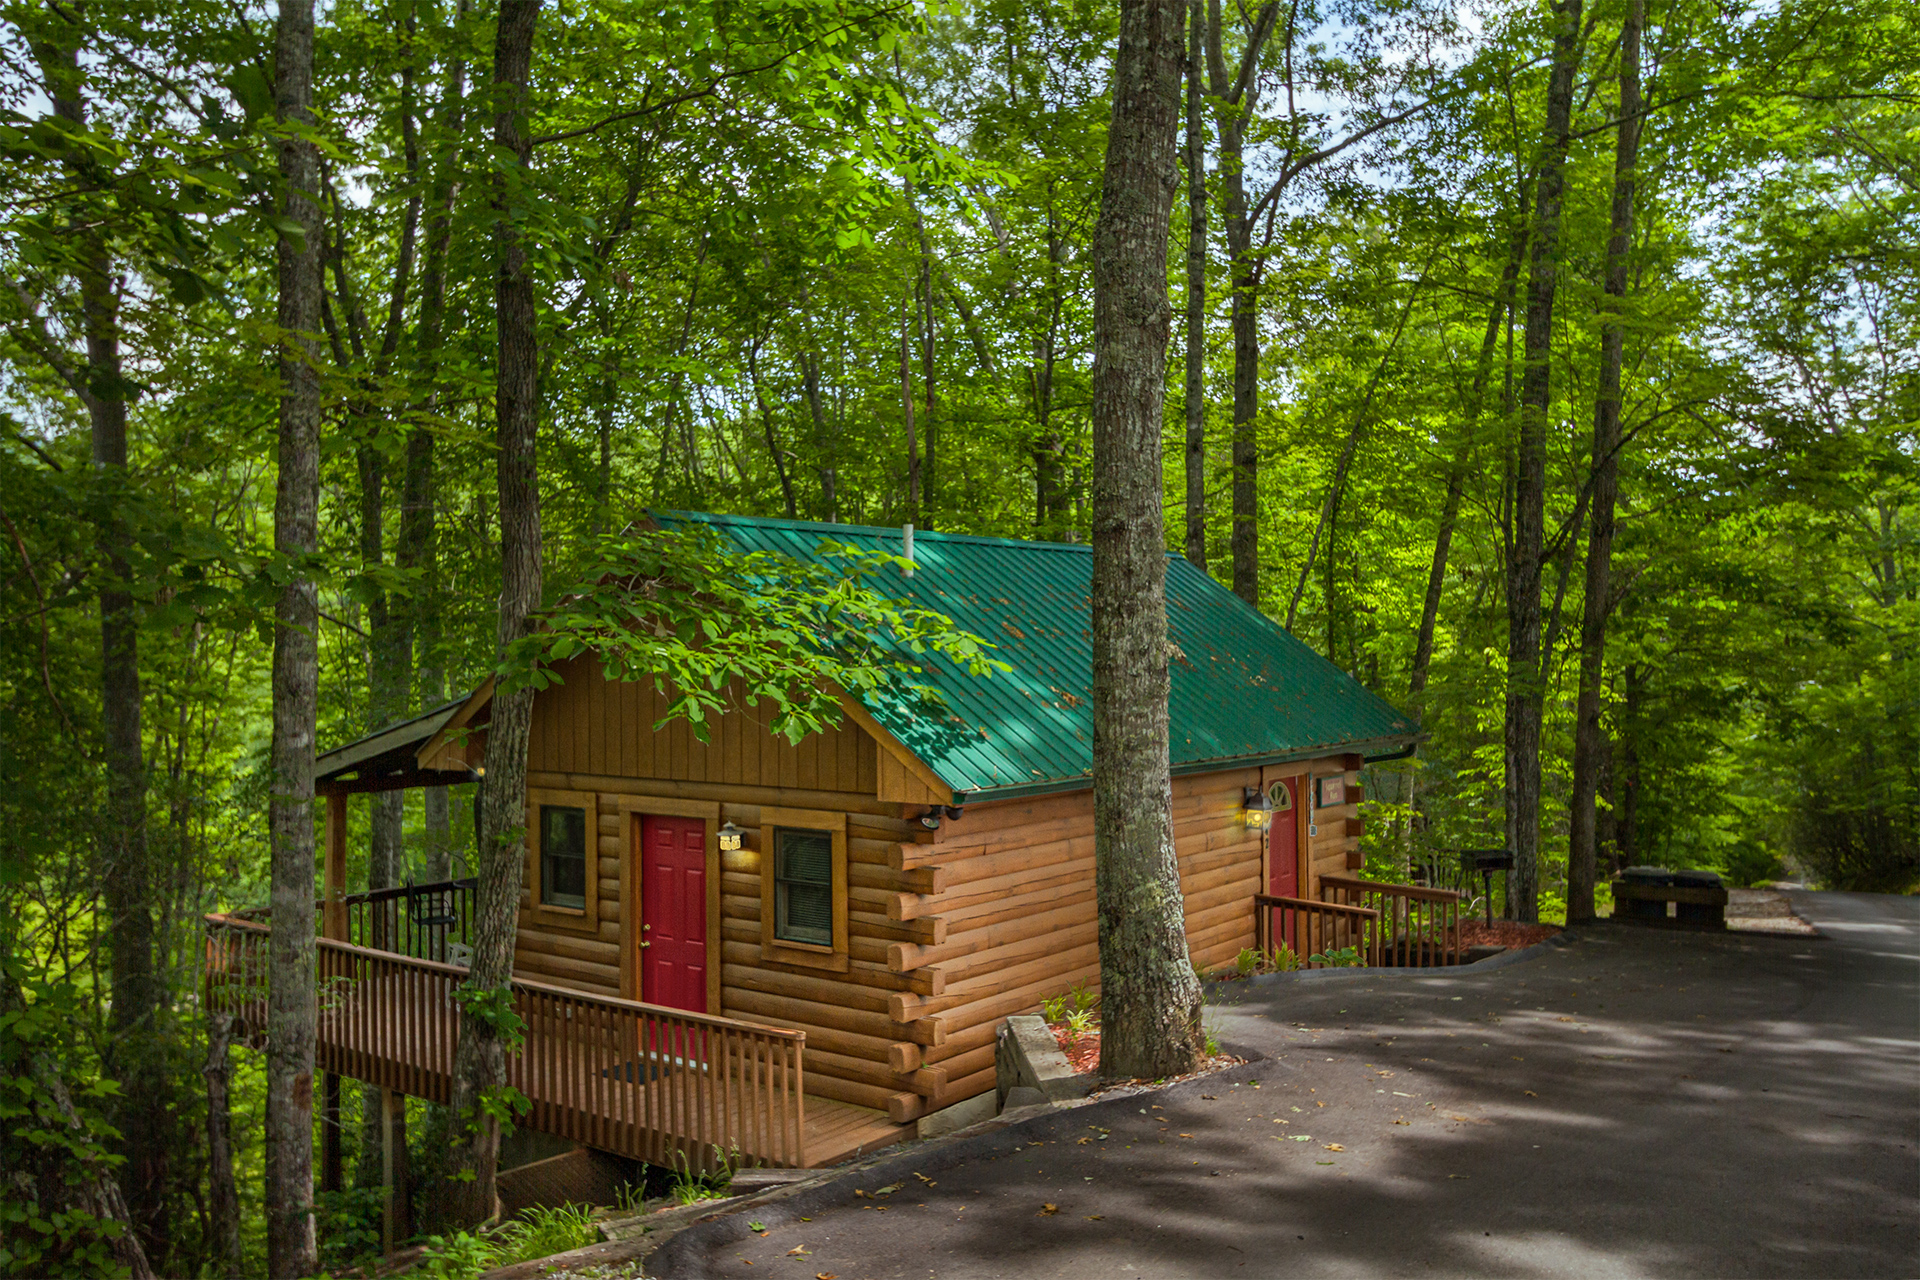 rental details for squirrel run log cabin rental in bryson city nc managed by carolina mountain